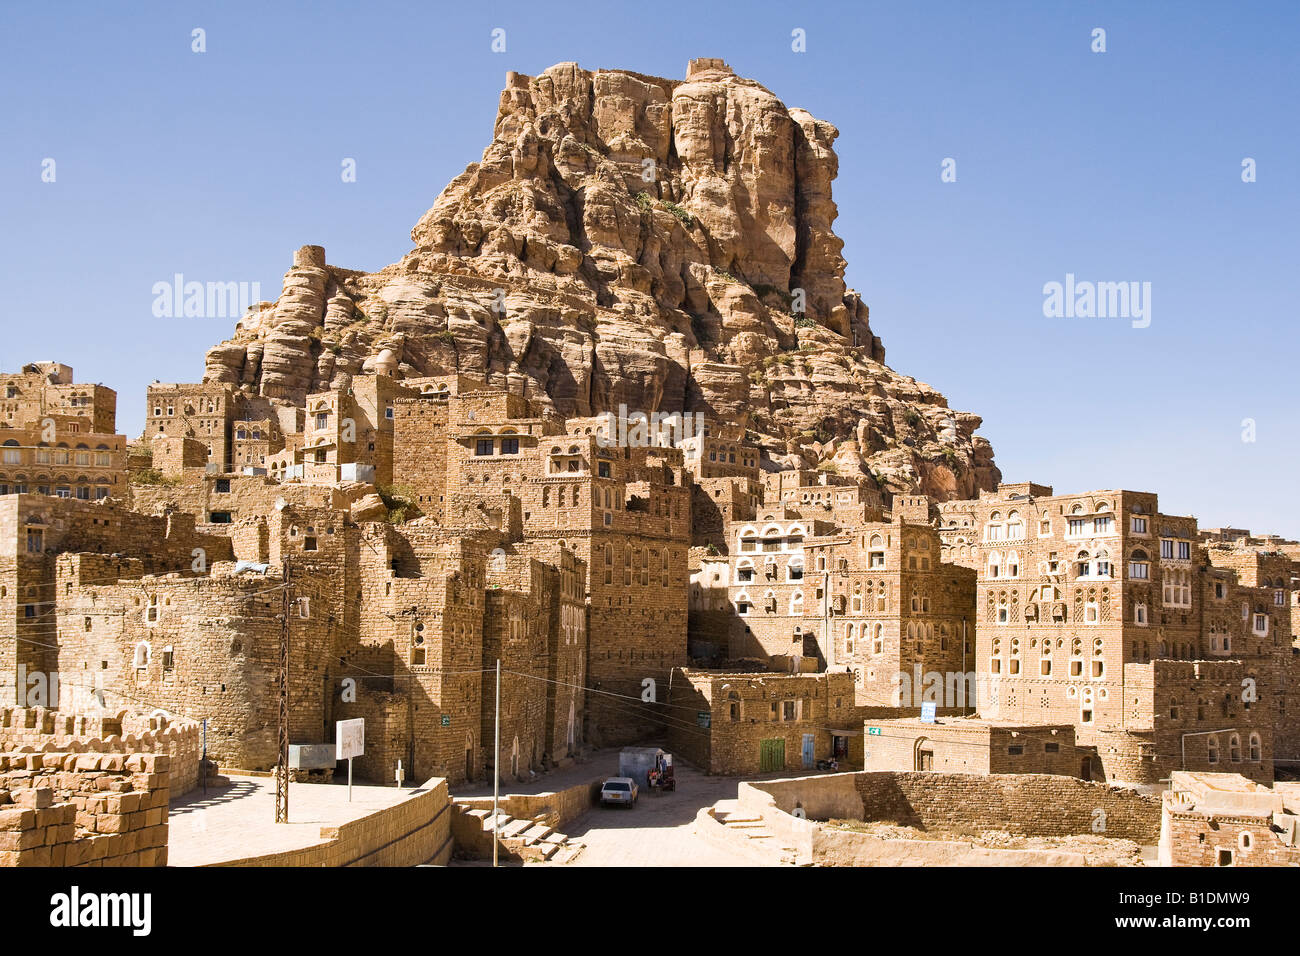 City below fortress on top of the mountain at Thulla Yemen Middle East - Stock Image